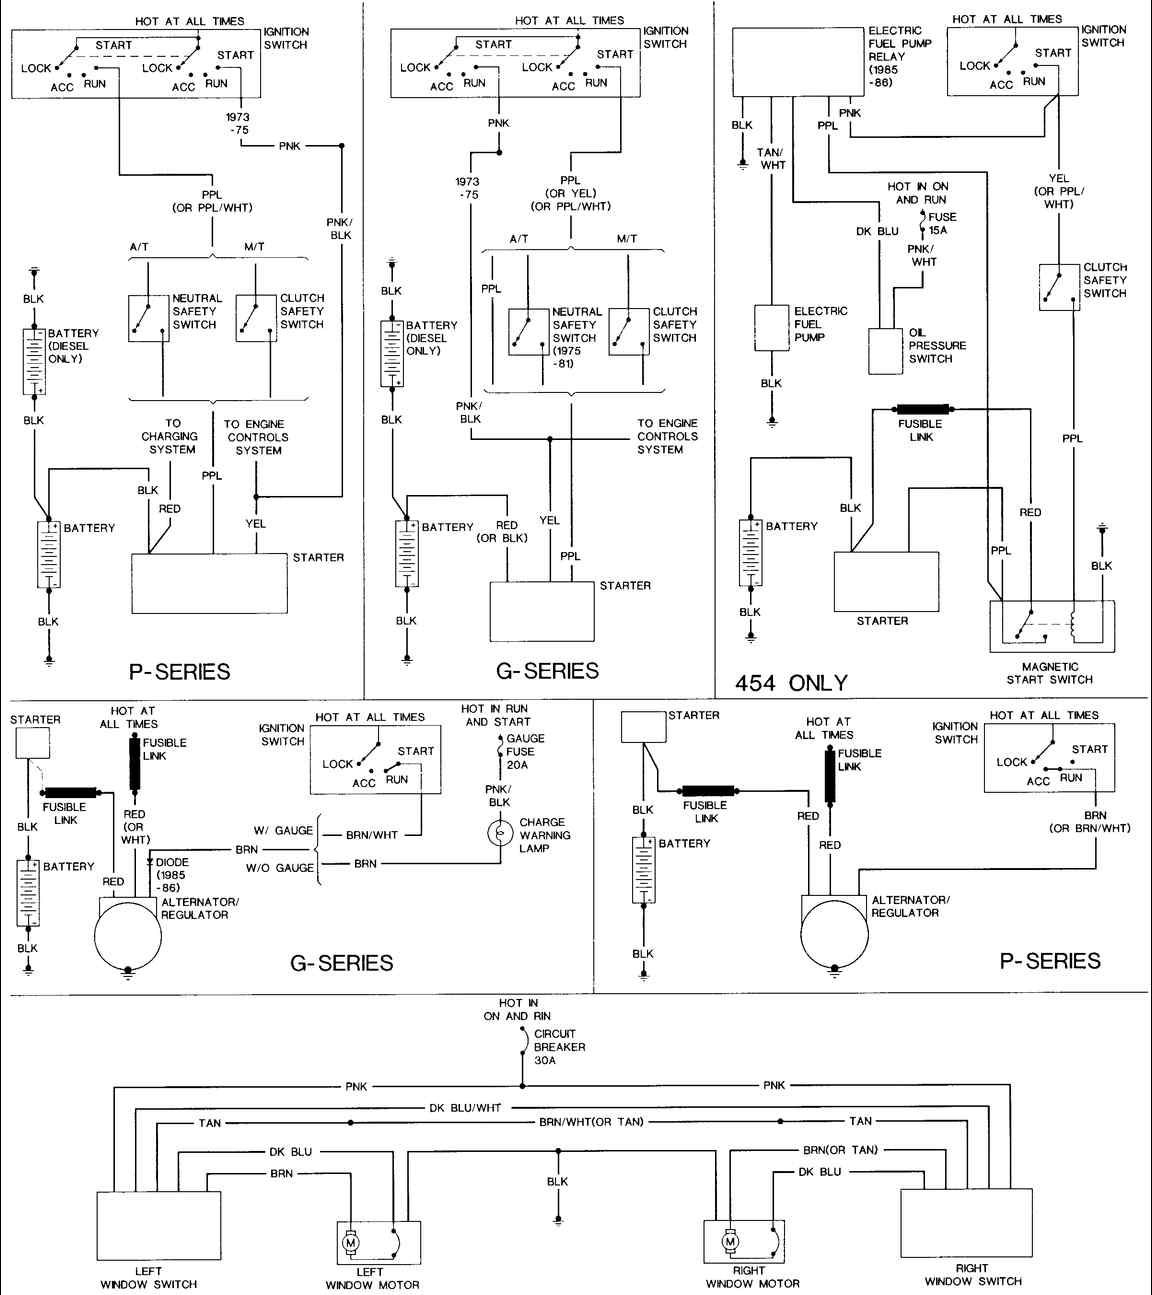 0c73623a181dc376dbb4777e2029d285 85 chevy truck wiring diagram 85 chevy van the steering column  at gsmportal.co